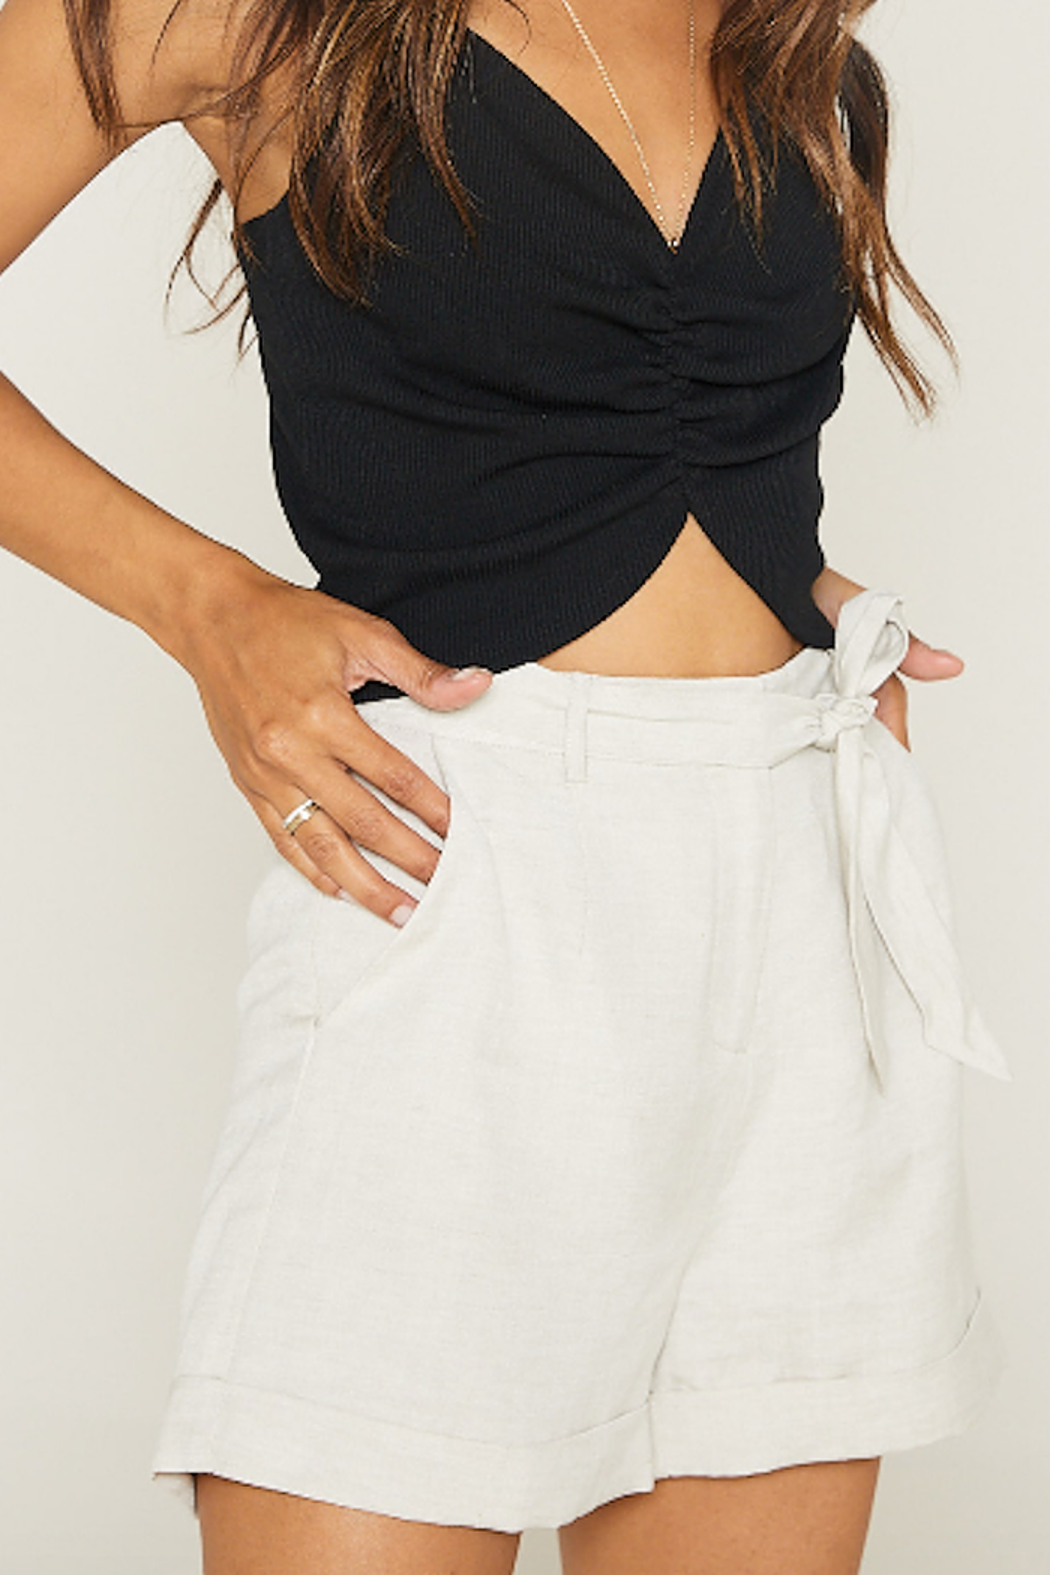 SAGE THE LABEL Native Fox Tie Front Shorts - Side Cropped Image